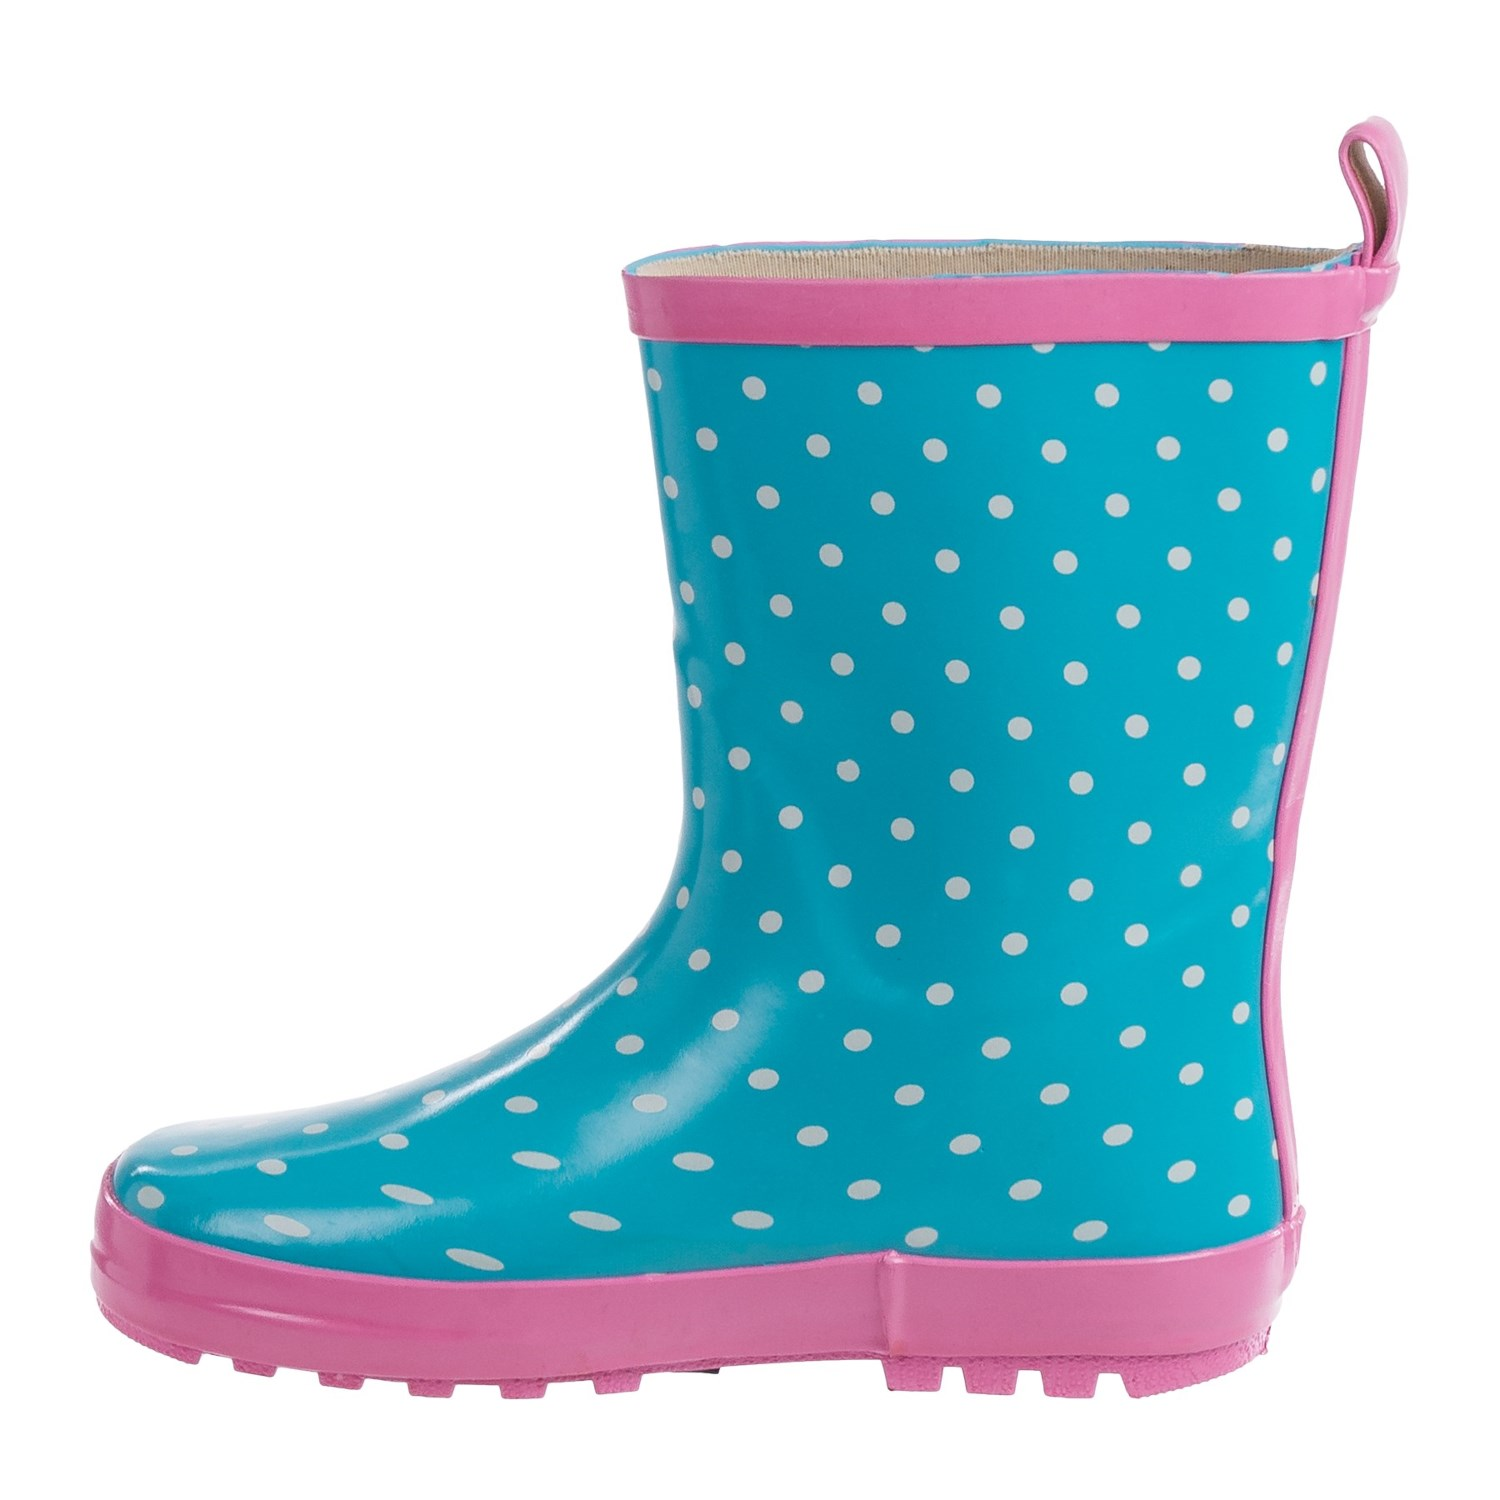 Free shipping BOTH ways on girls rain boots, from our vast selection of styles. Fast delivery, and 24/7/ real-person service with a smile. Click or call